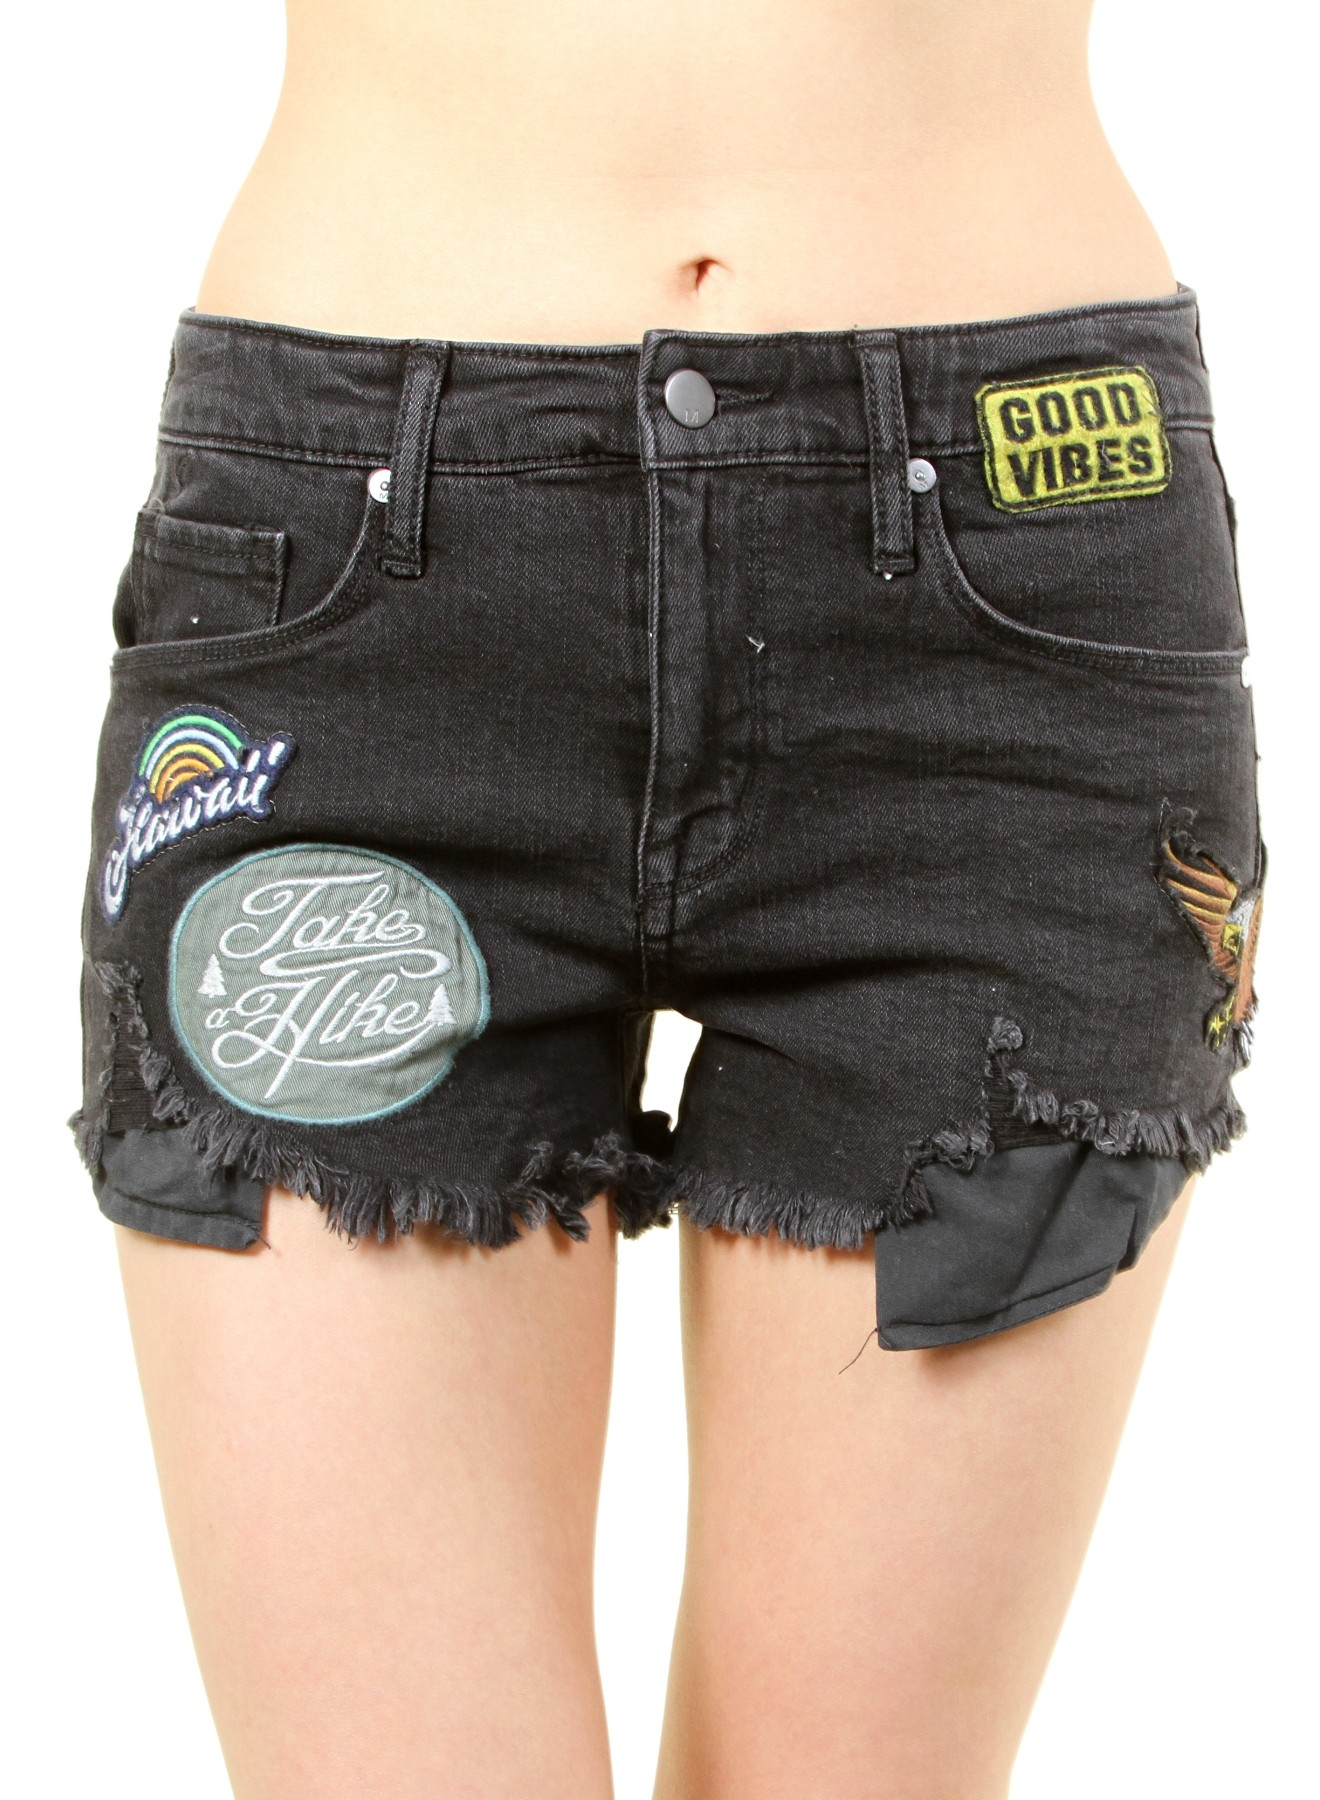 0c4ce7136280 women's high rise shorts with patches. fh-mbb019864-black